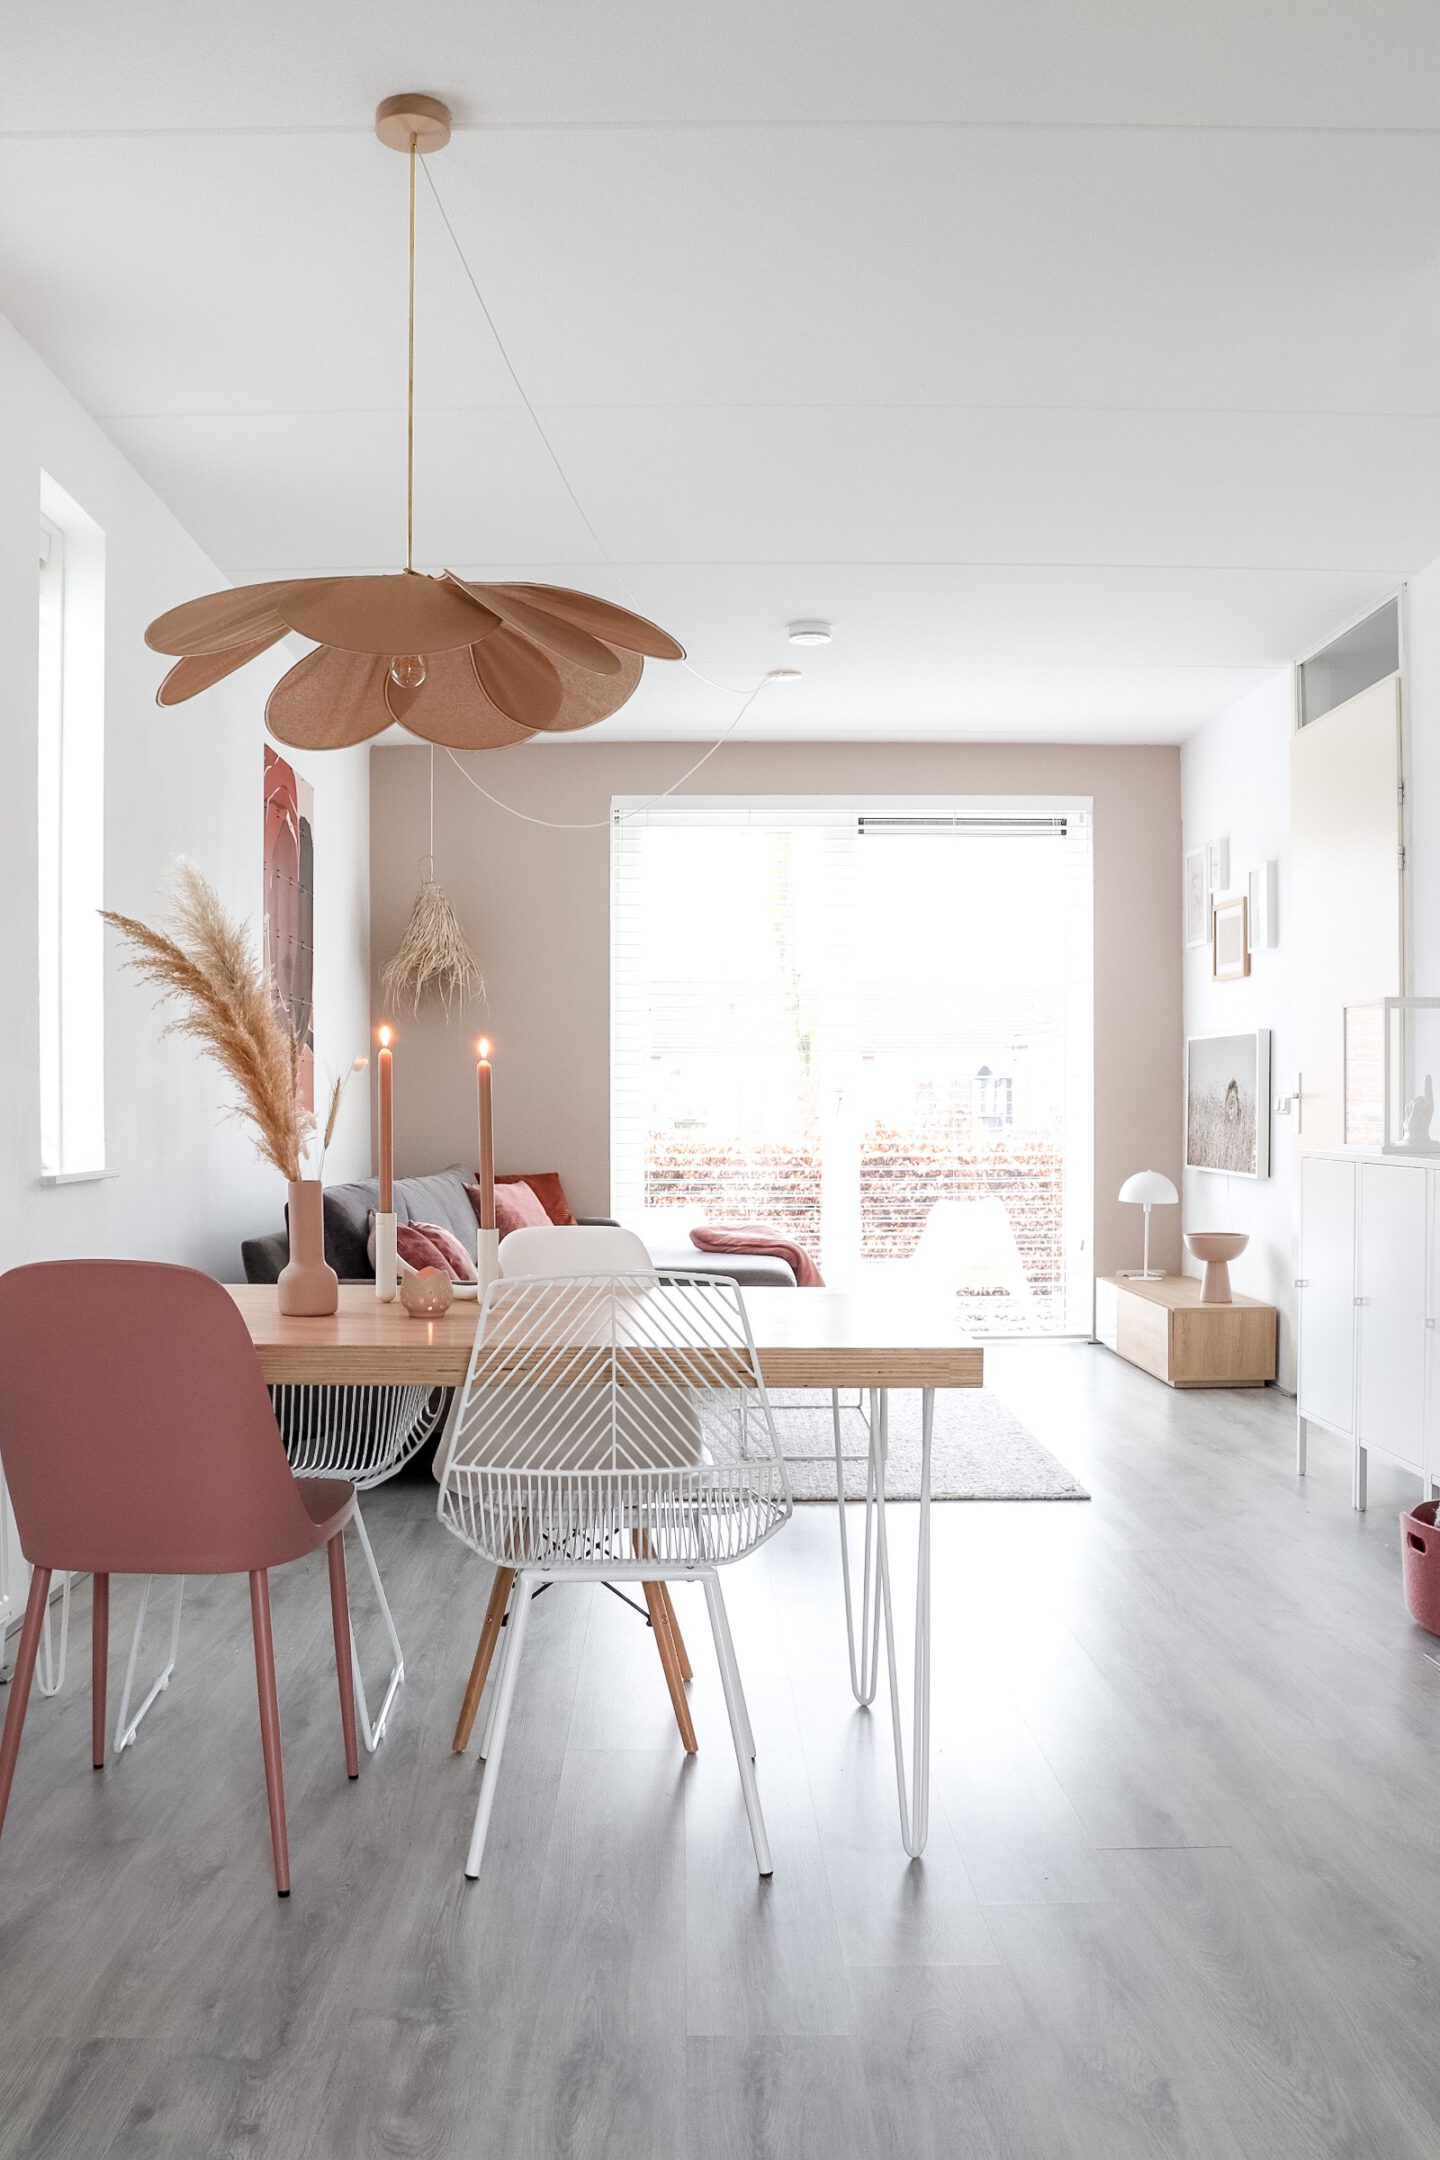 Georges store hanglamp nude ombre